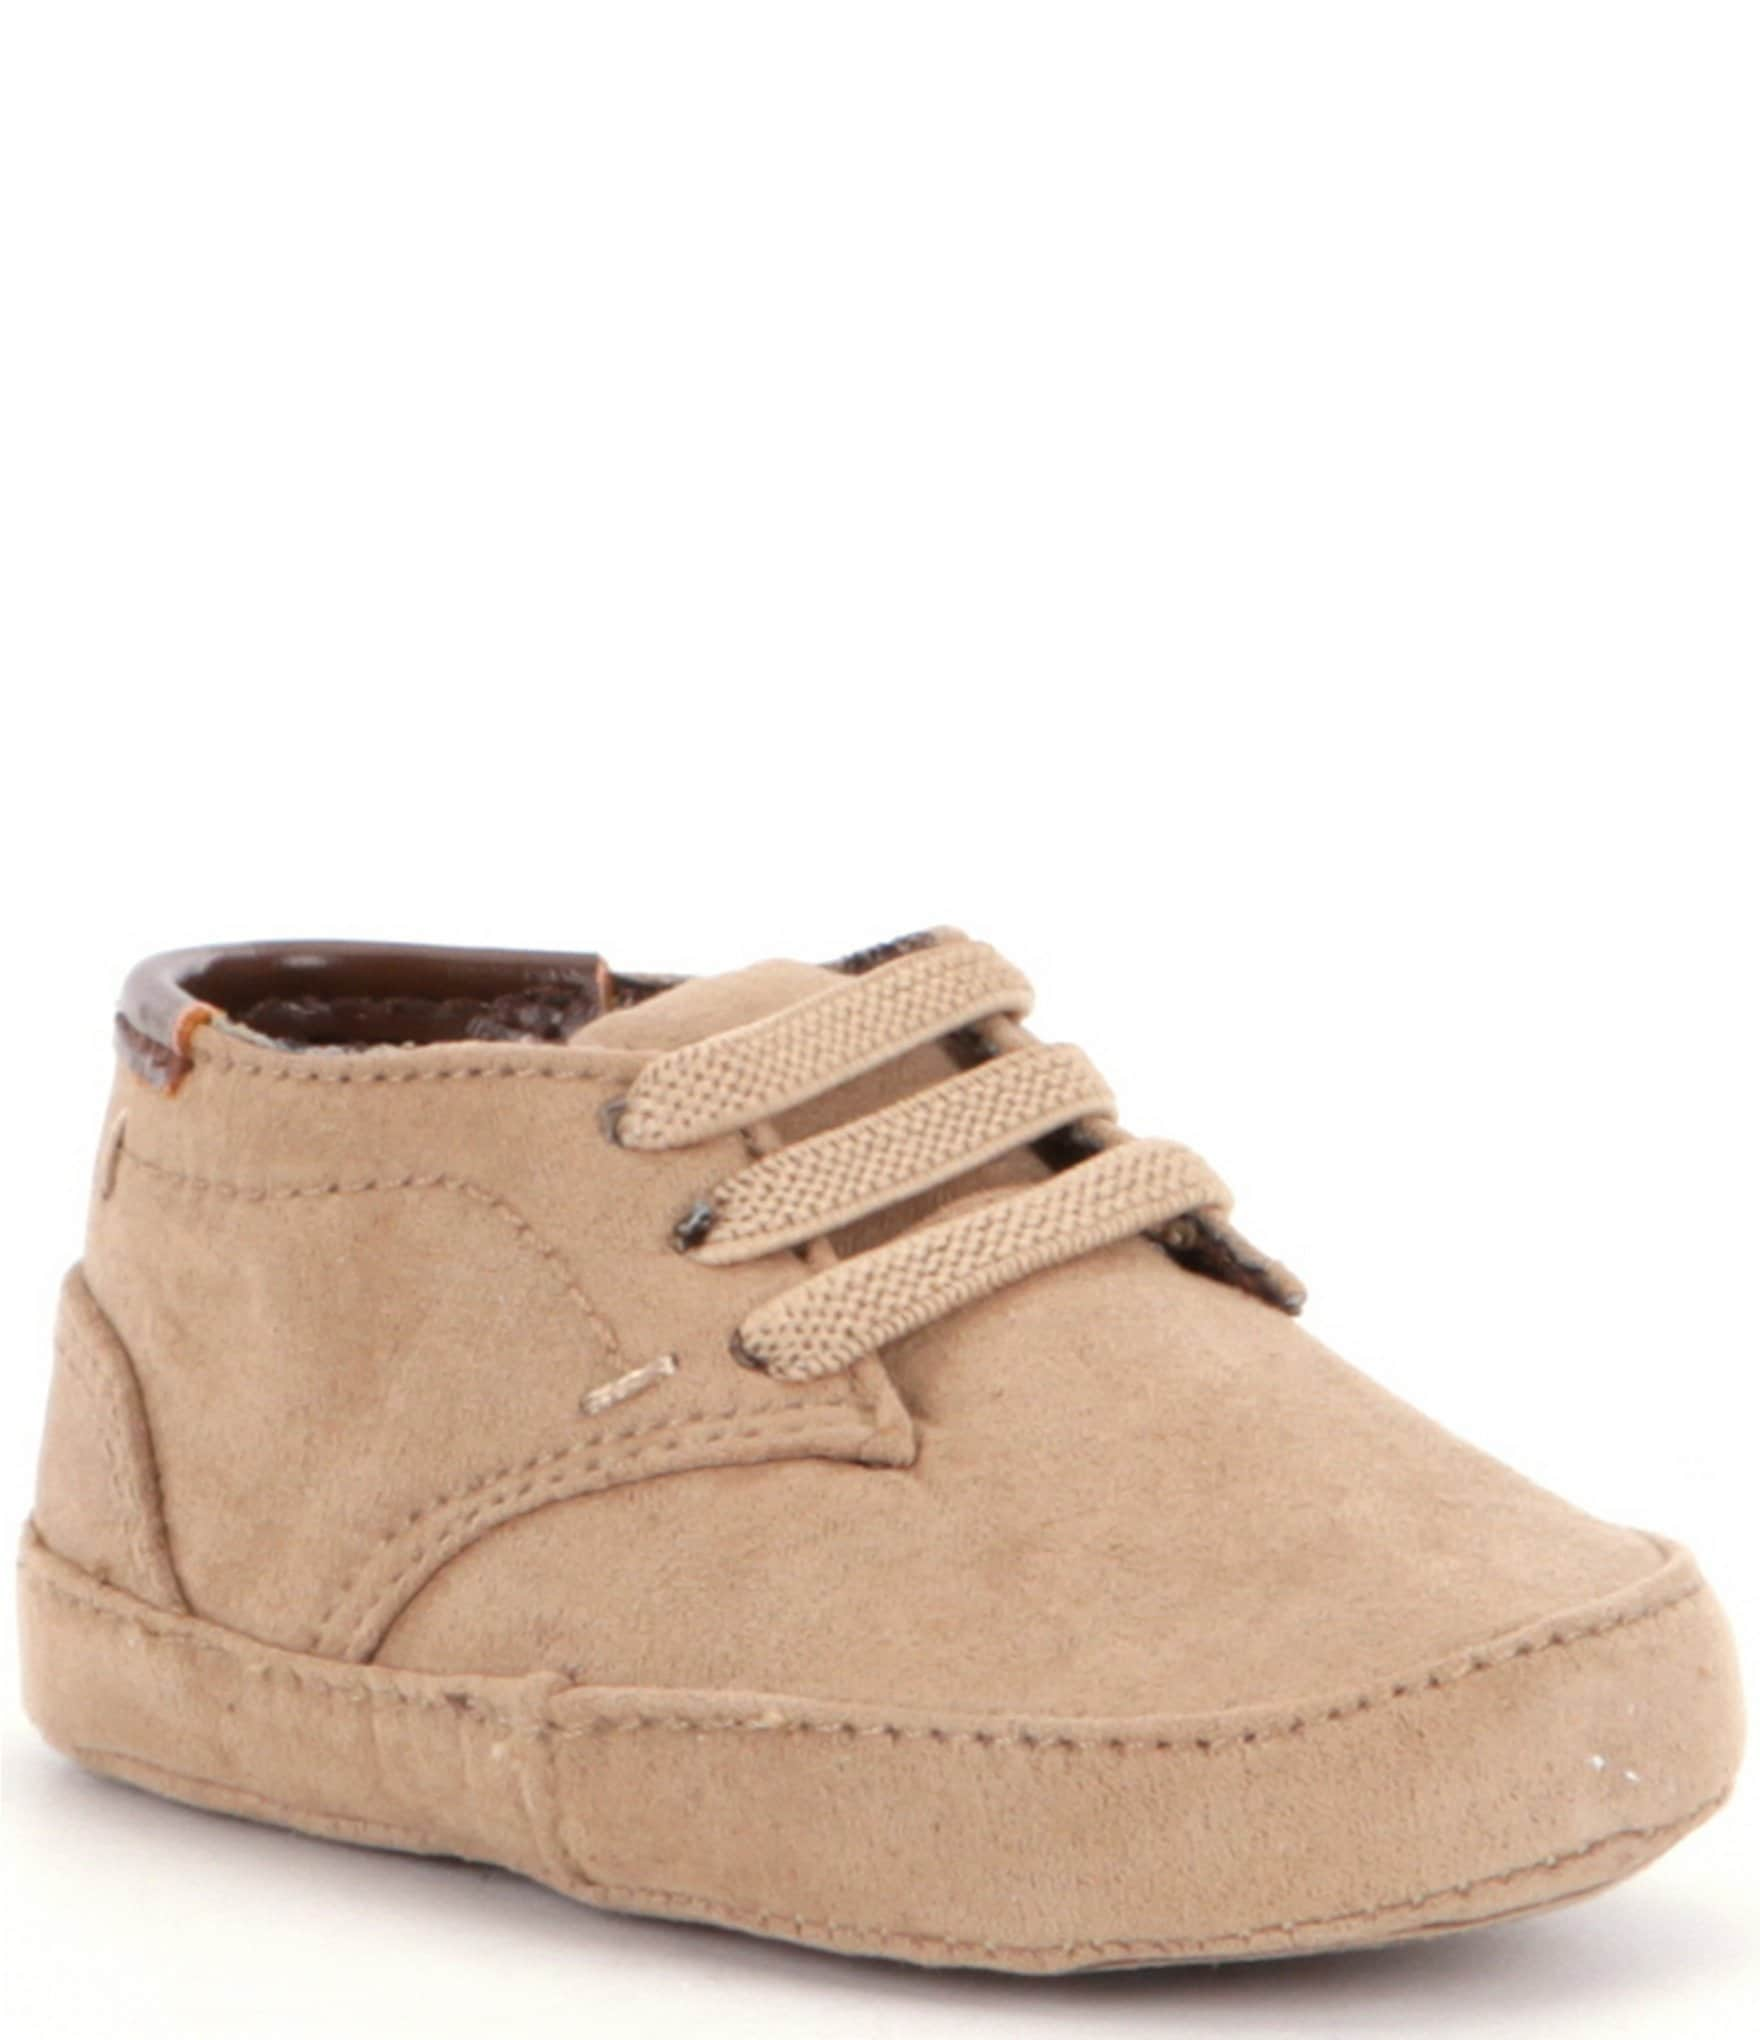 Kenneth Cole Reaction Boys Baby Real Deal Chukka Boot